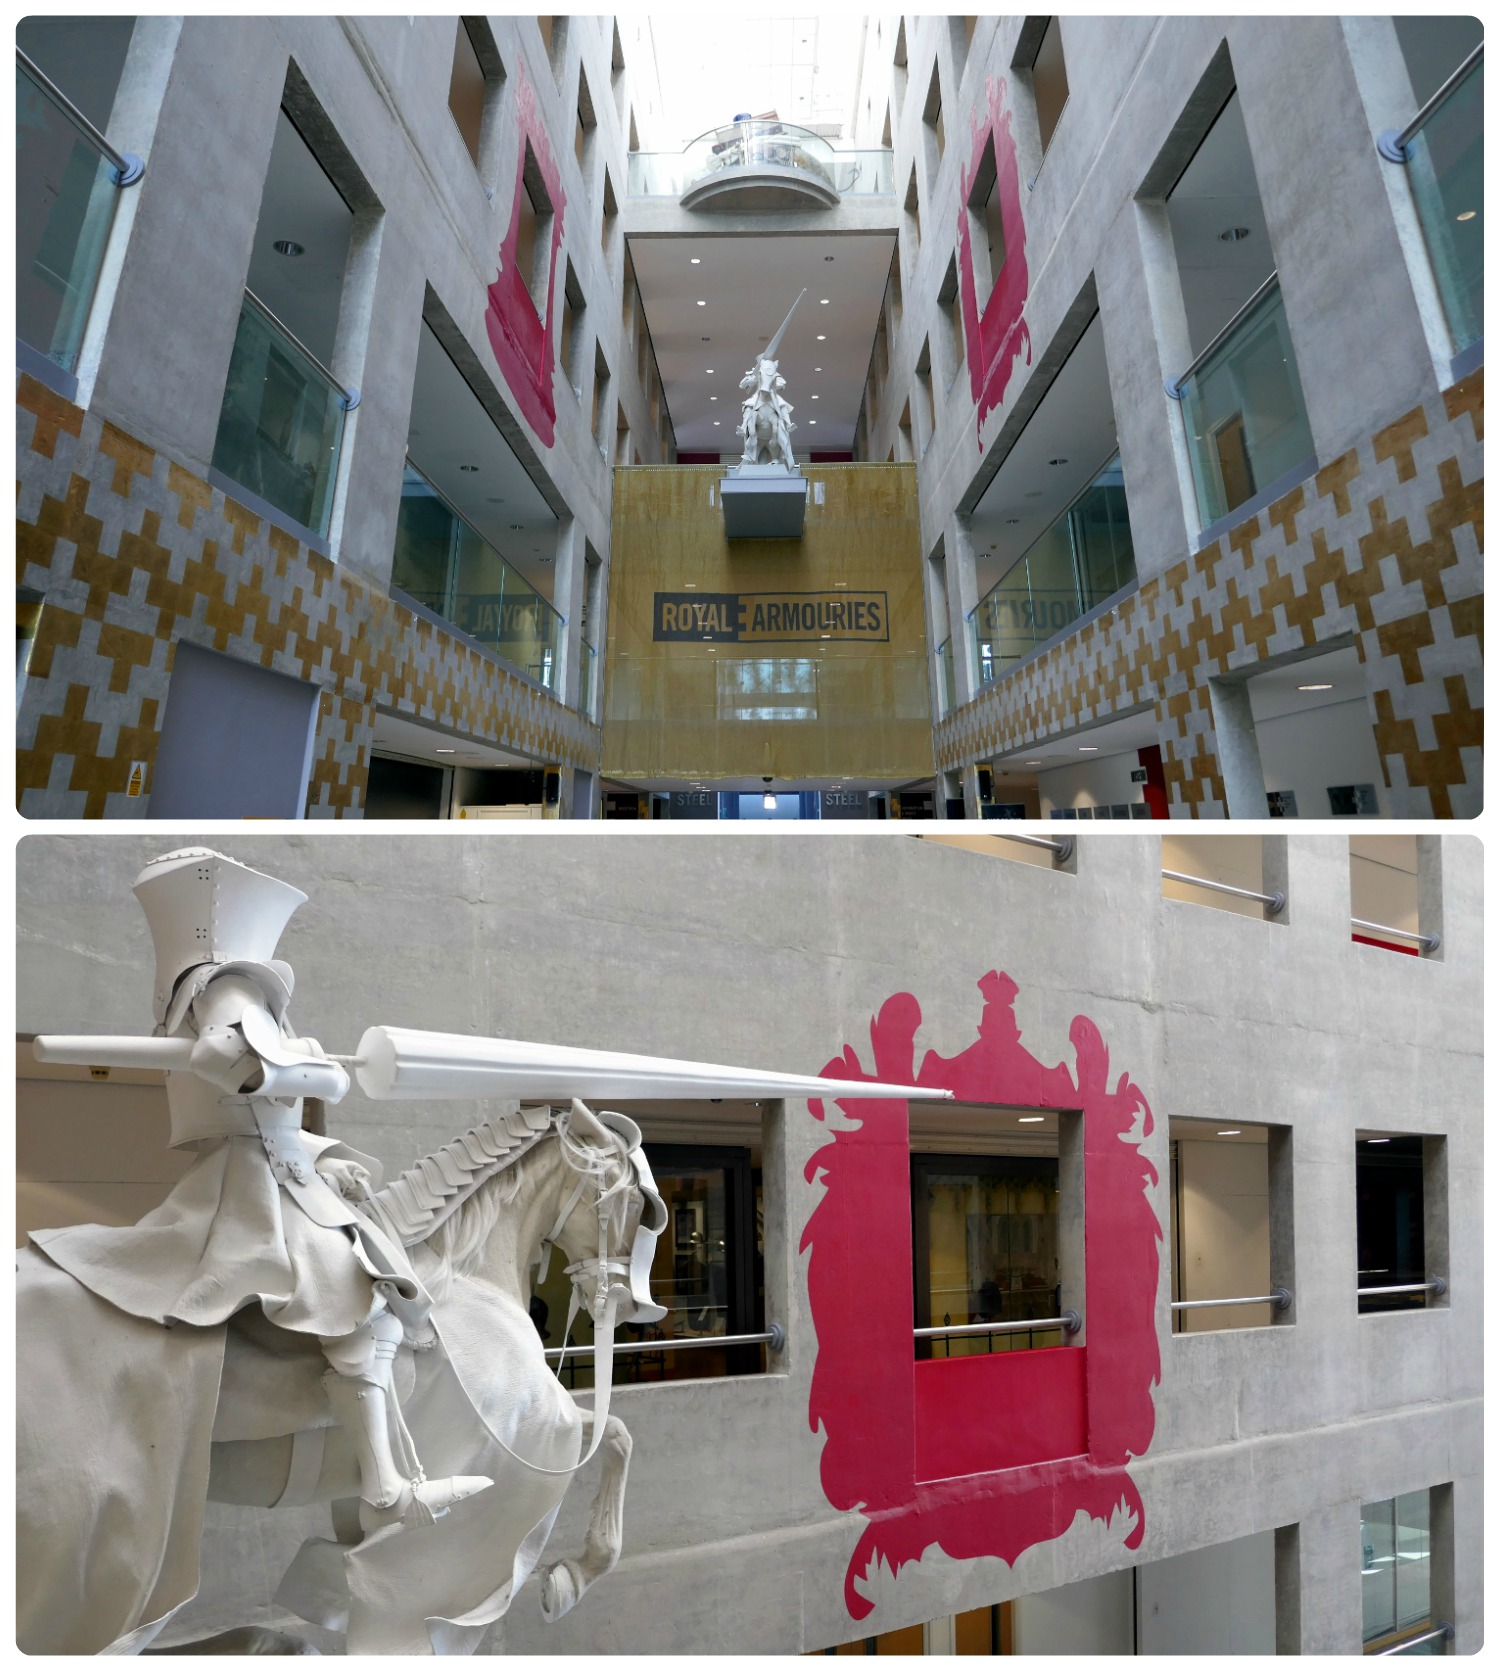 The entrance to the Royal Armouries Museum is impressive and sets the tone for the rest of the museum!